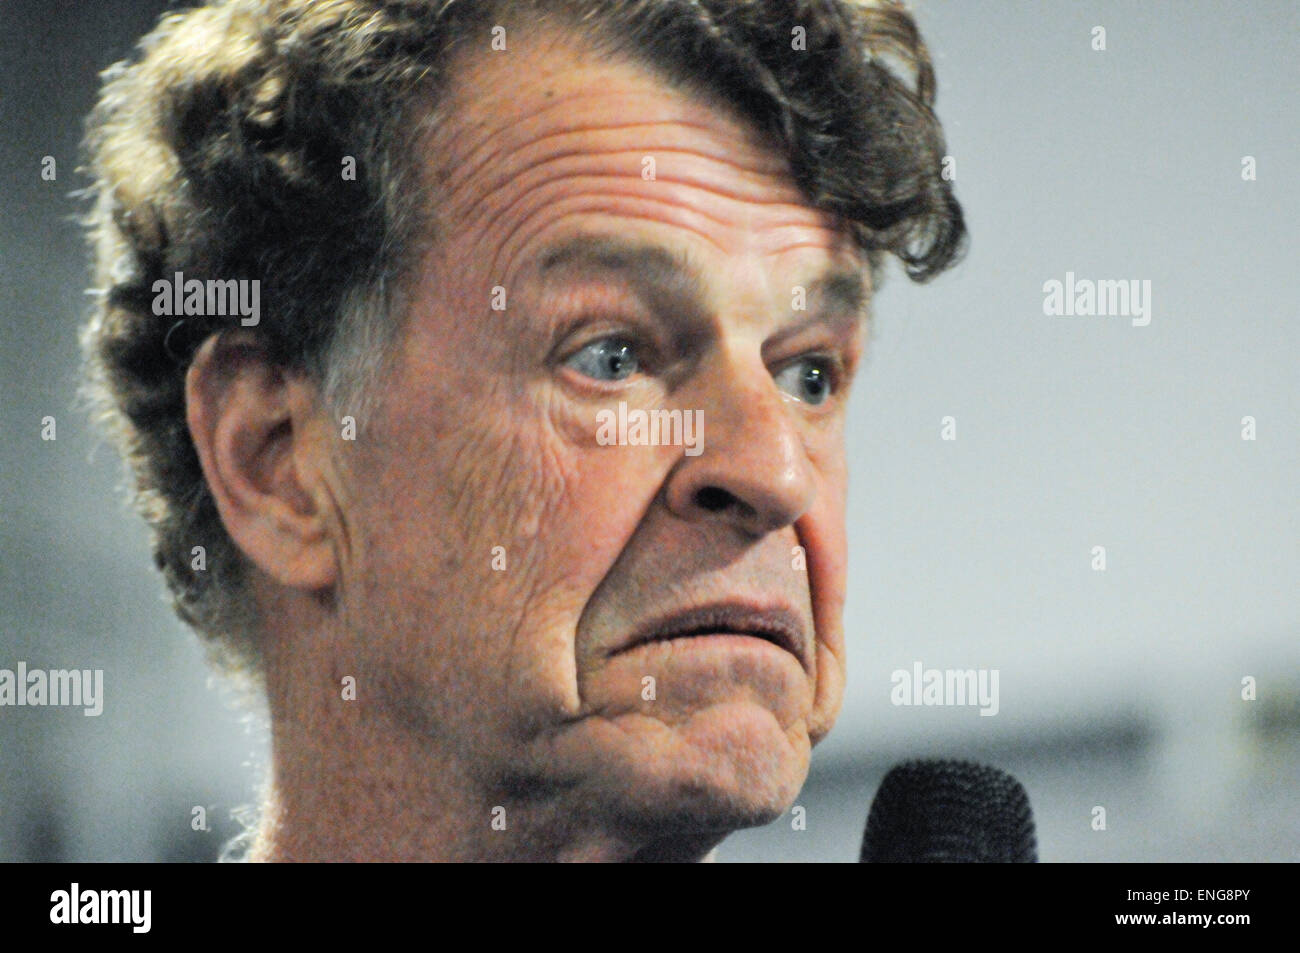 John Noble Lord Of The Rings Character